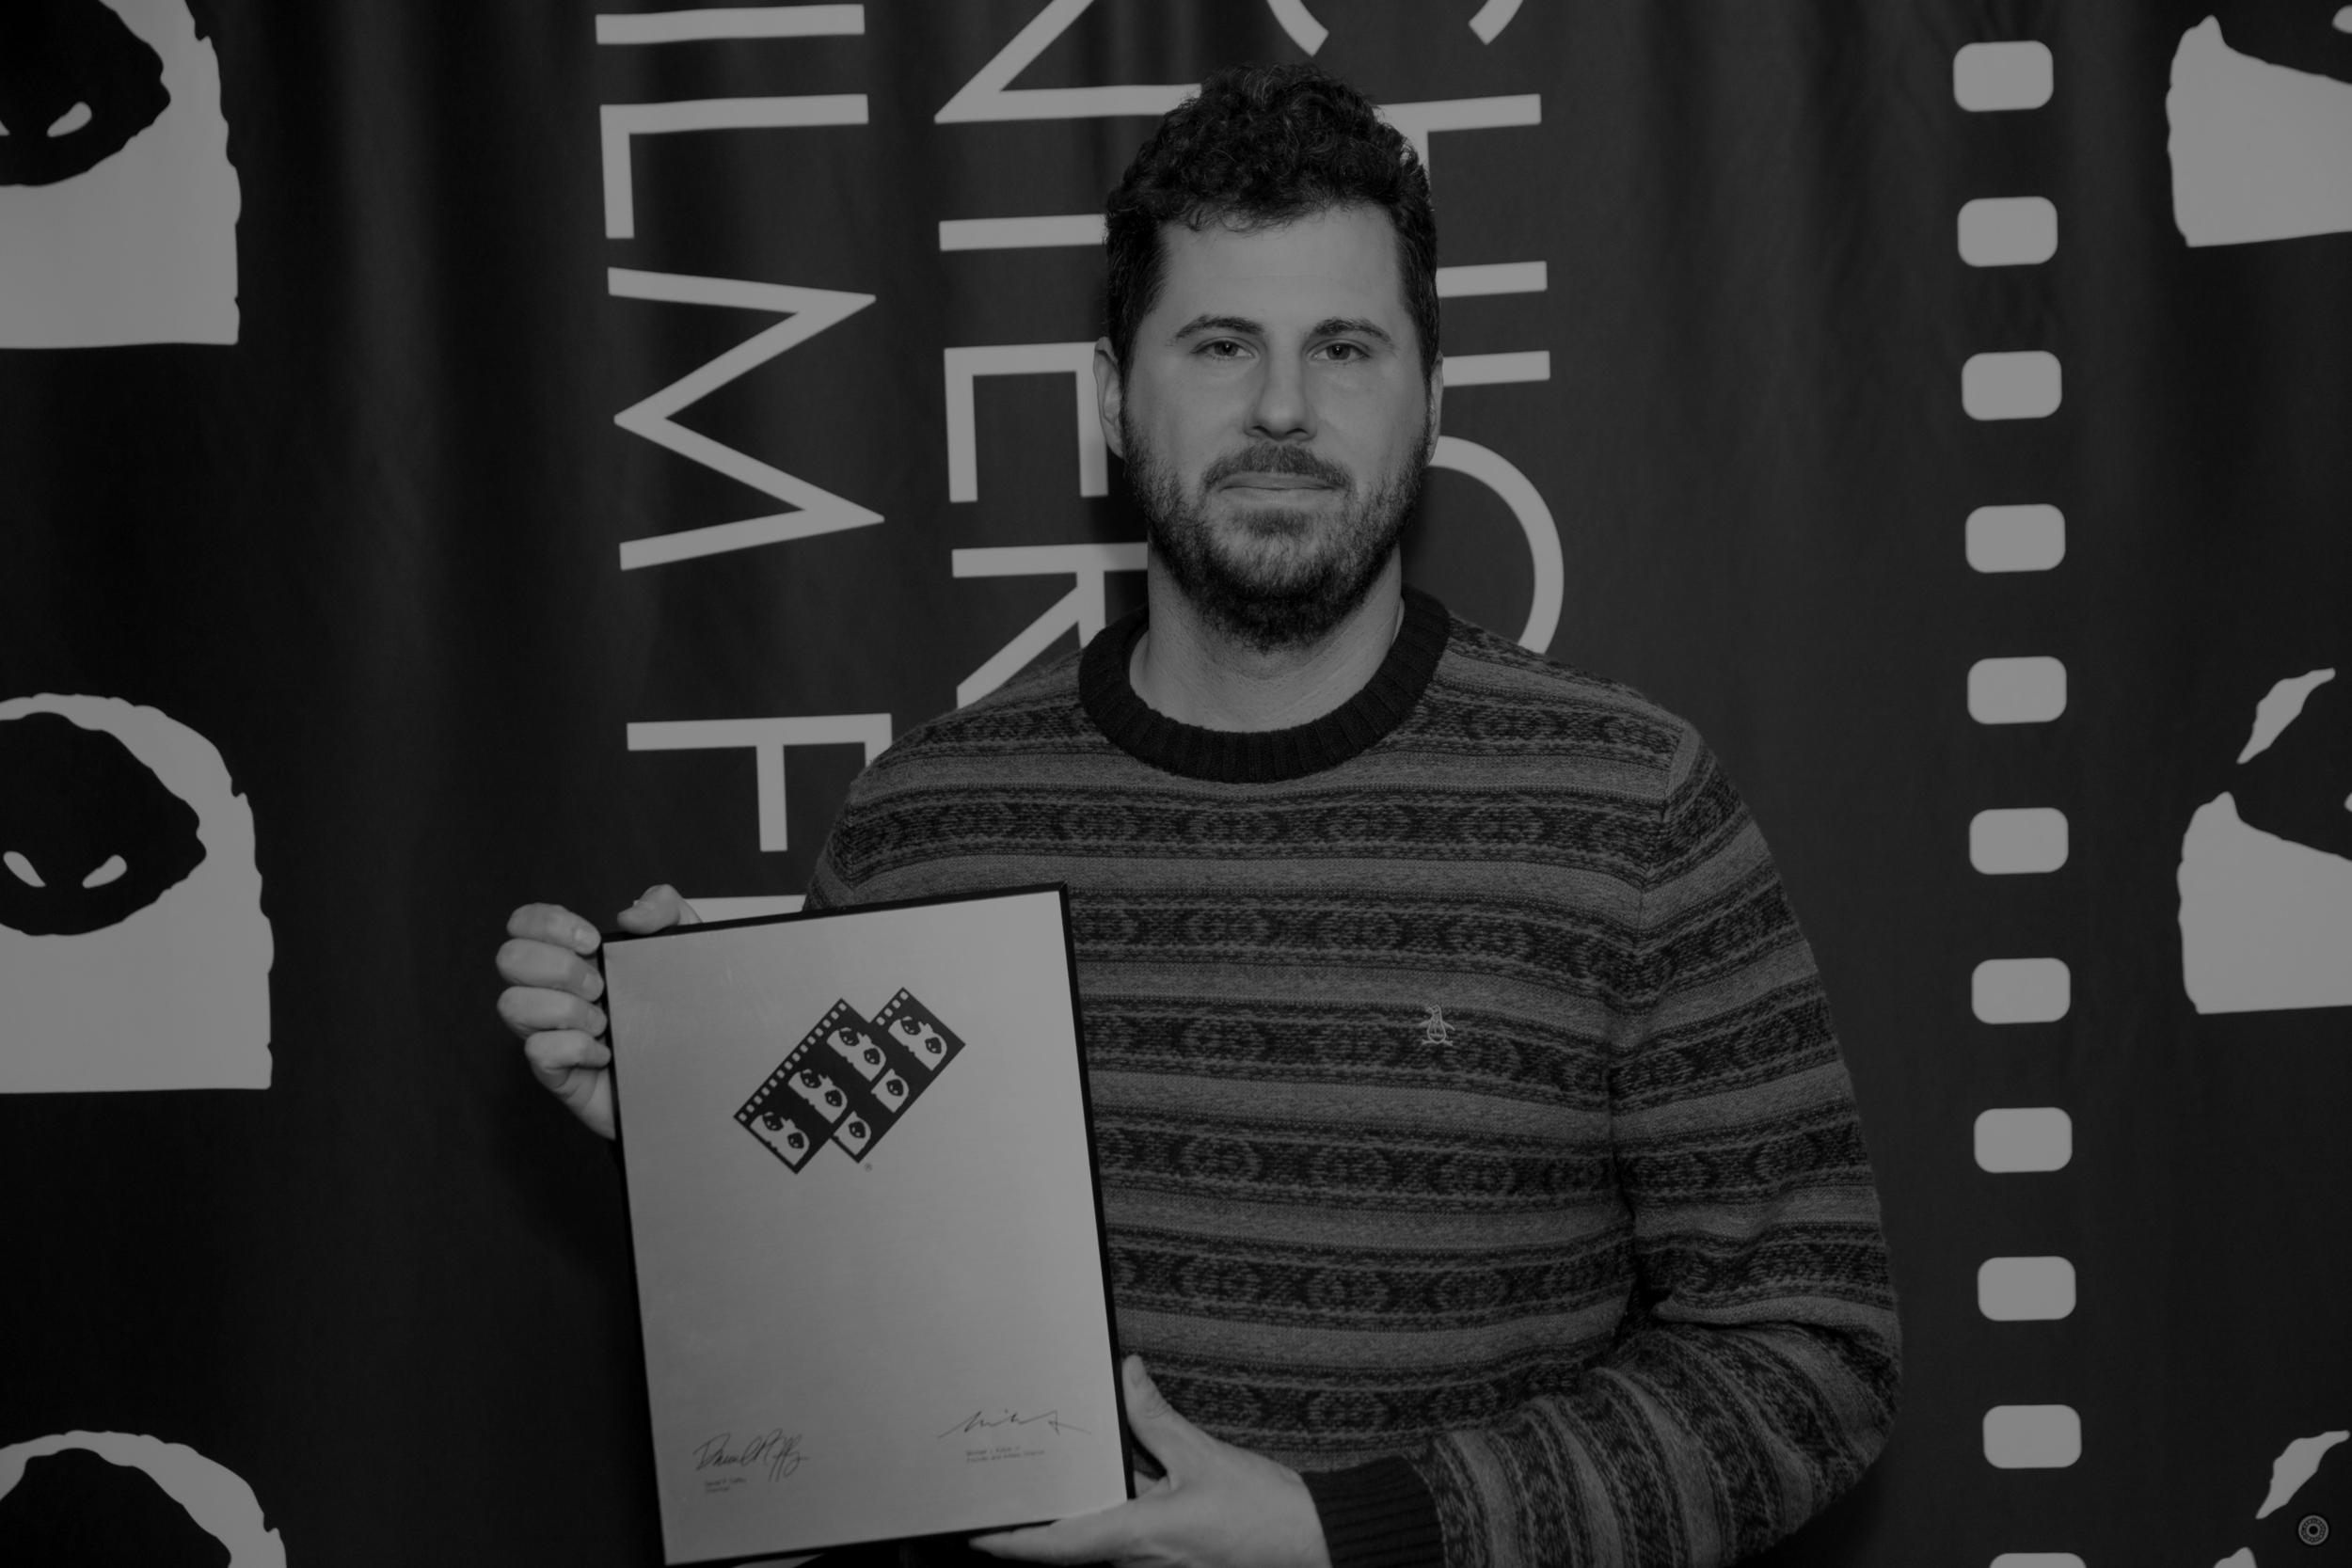 - ALROJO FILMS WAS FOUNDED BY MIKE PAULUCCI IN 2007 AS THE LEGAL ENTITY THAT PRODUCED HIS NARRATIVE FILMS. SINCE THEN, IT HAS BECOME A FULL FLEDGED PRODUCTION COMPANY FROM CONCEPT THROUGH COMPLETION, CREATING COMPELLING MEDIA FOR SOME OF THE BIGGEST BRANDS IN THE WORLD.*PAULUCCI, PICTURED HERE HOLDING A BLANK PLAQUE.WE CAN'T WAIT TO HEAR FROM YOU.